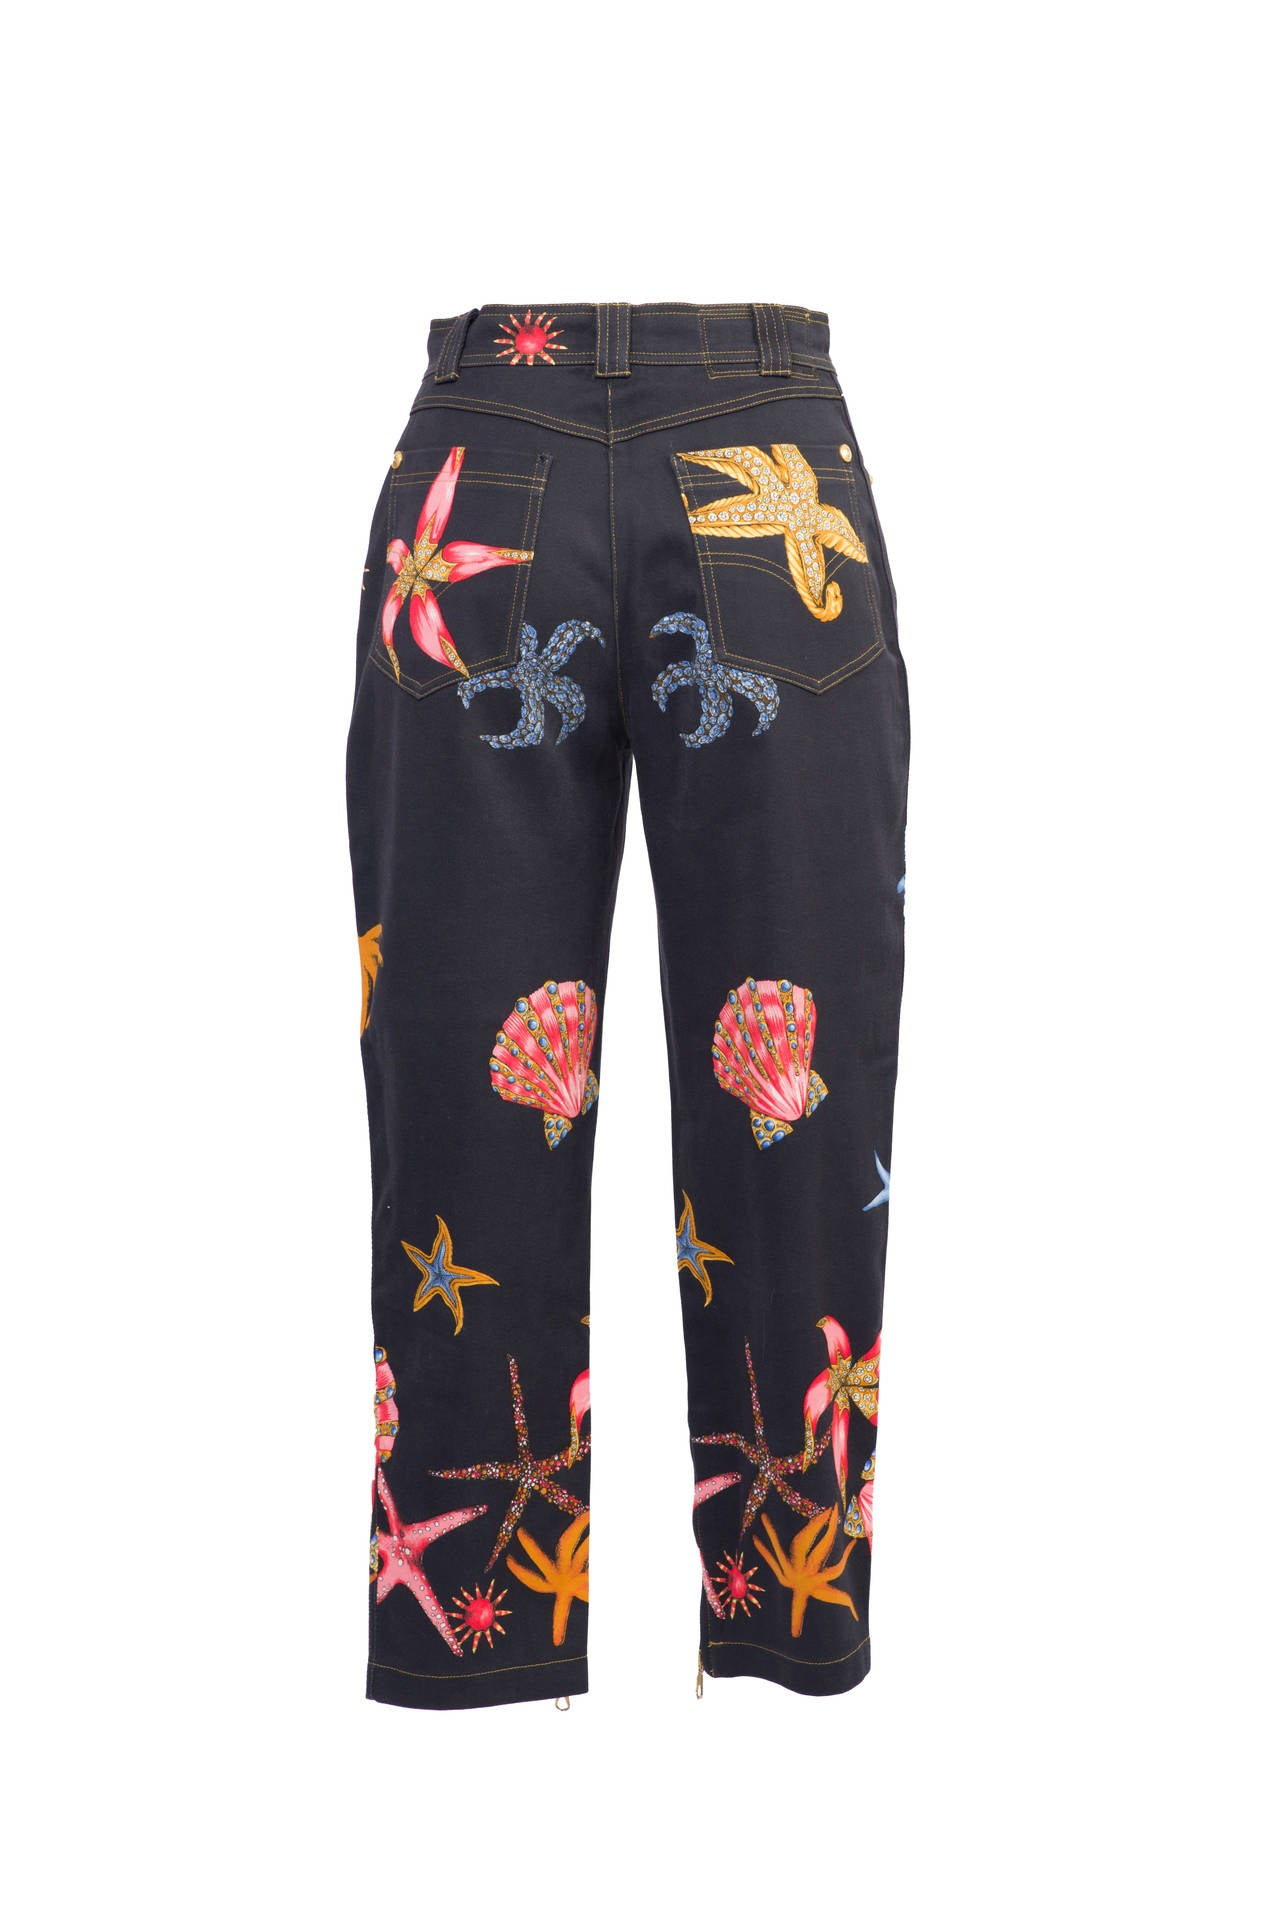 Gianni Versace Vintage Trousers Seashell collection.